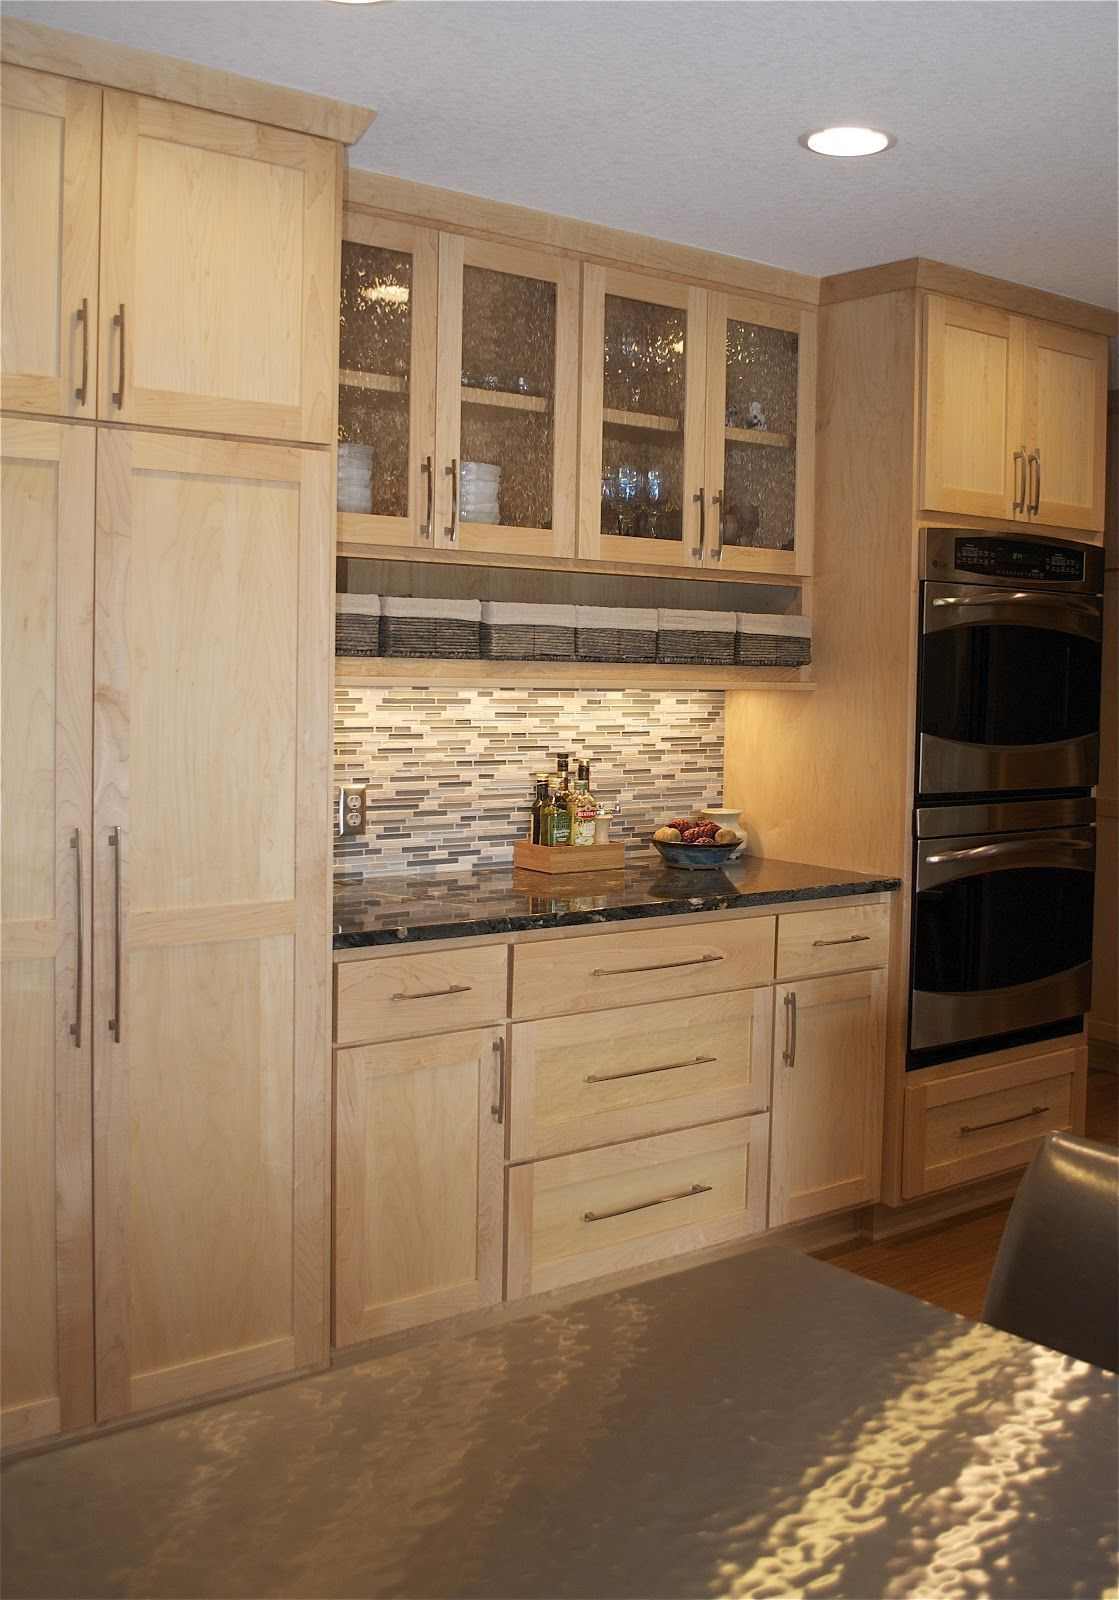 Kitchens with Light Maple Cabinets 2021 in 2020 | Wooden ...